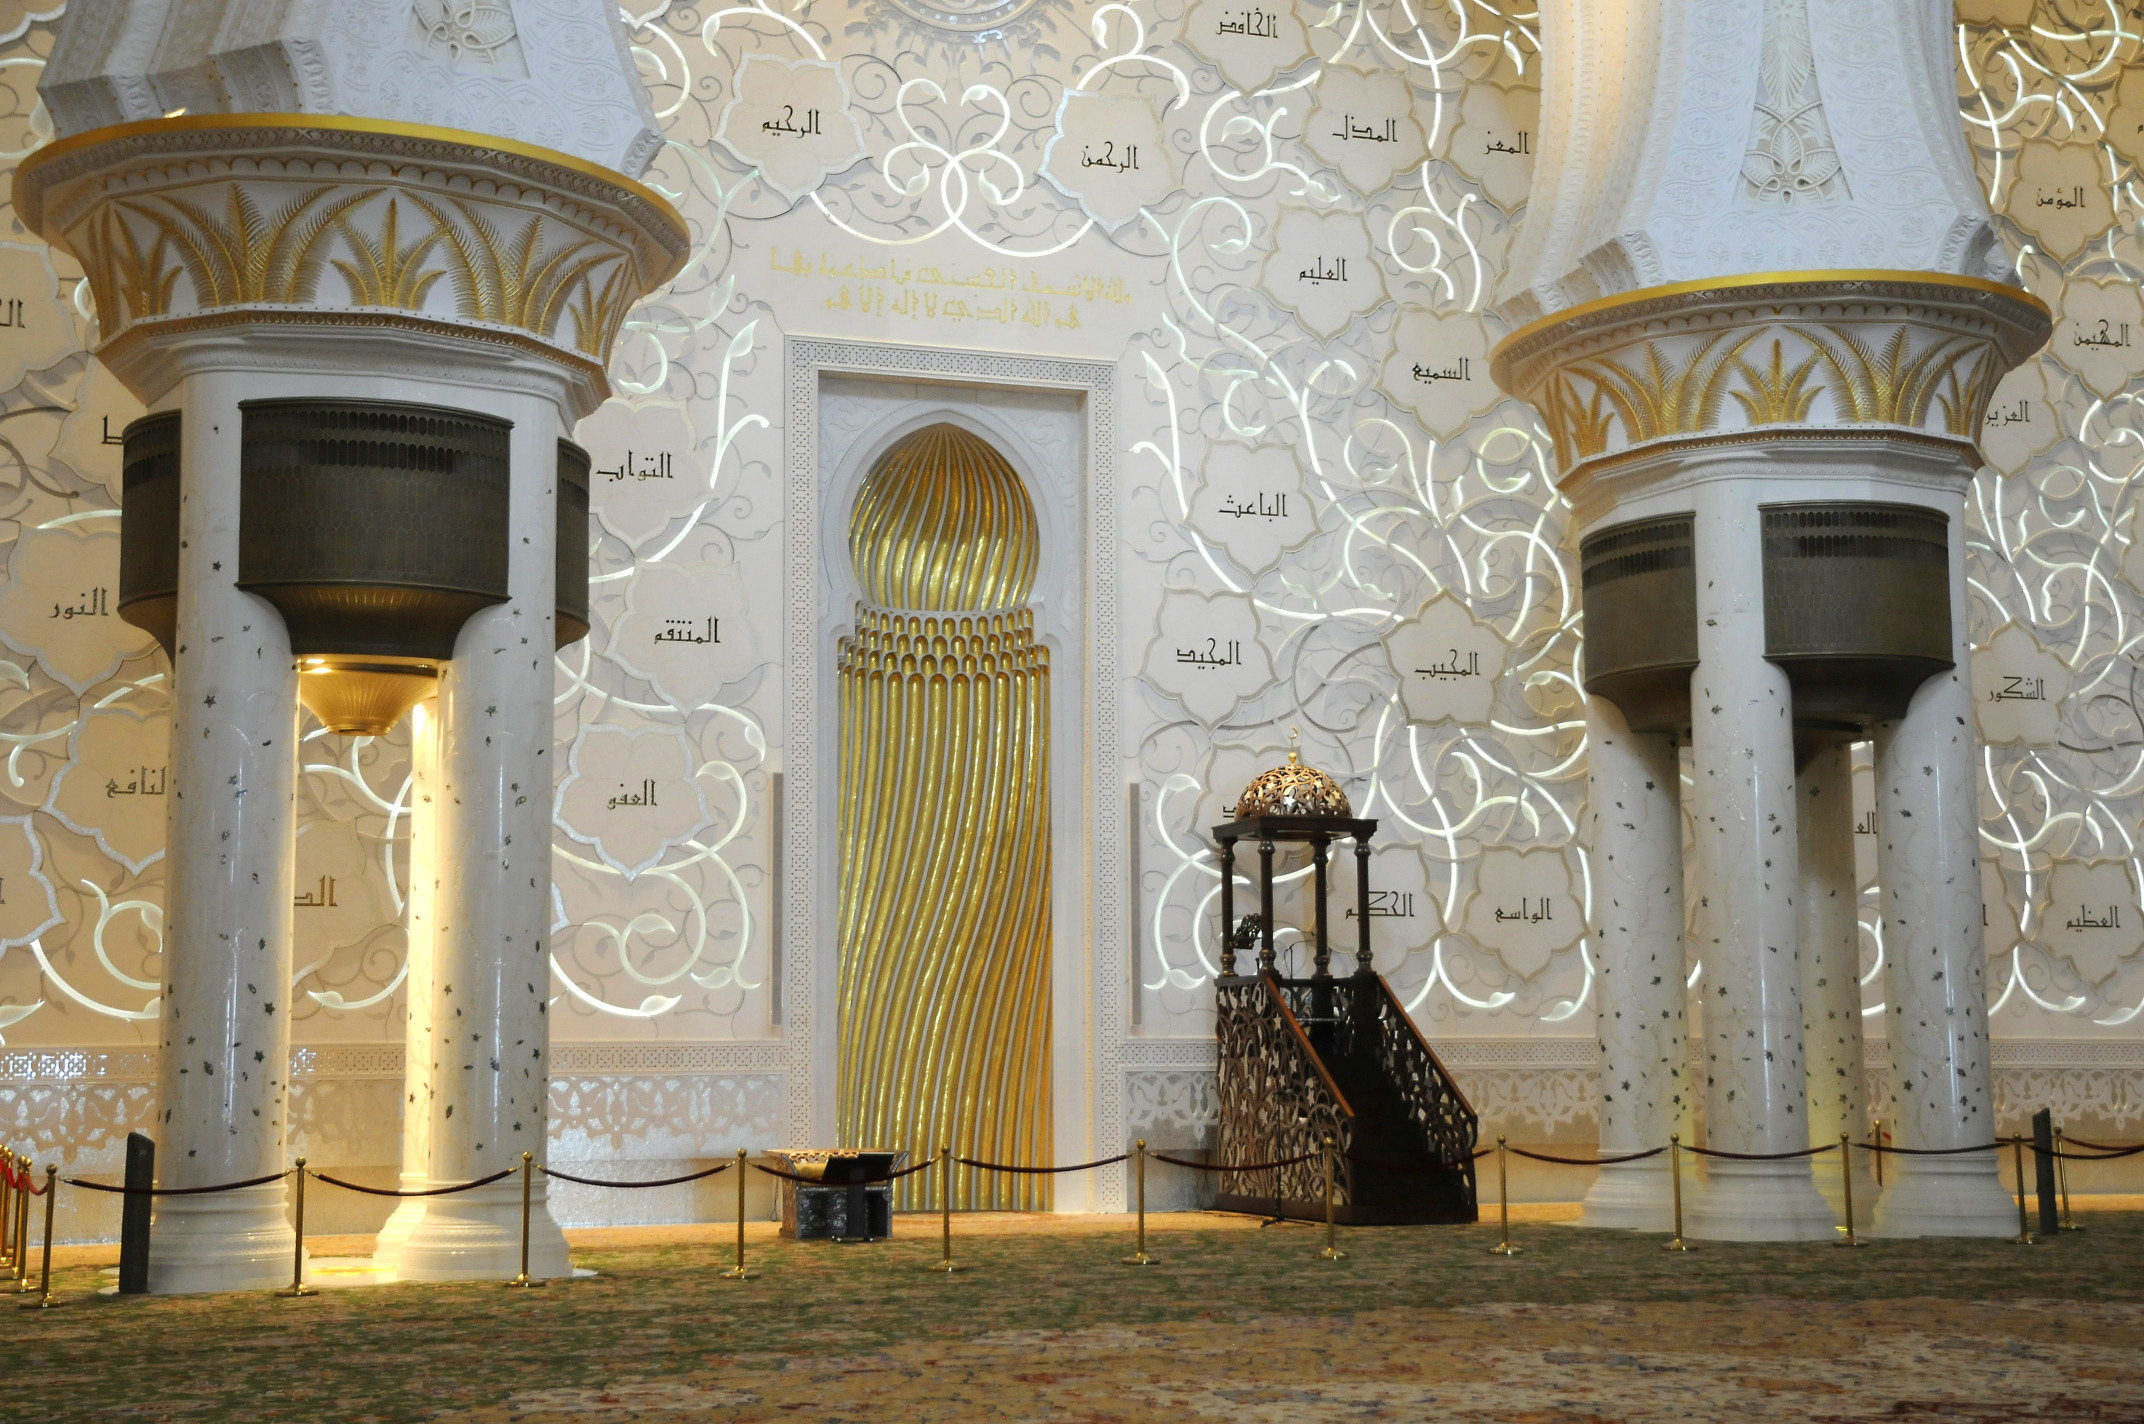 Mihrab Sheikh Zayed Grand Mosque Abu Dhabi Pictures